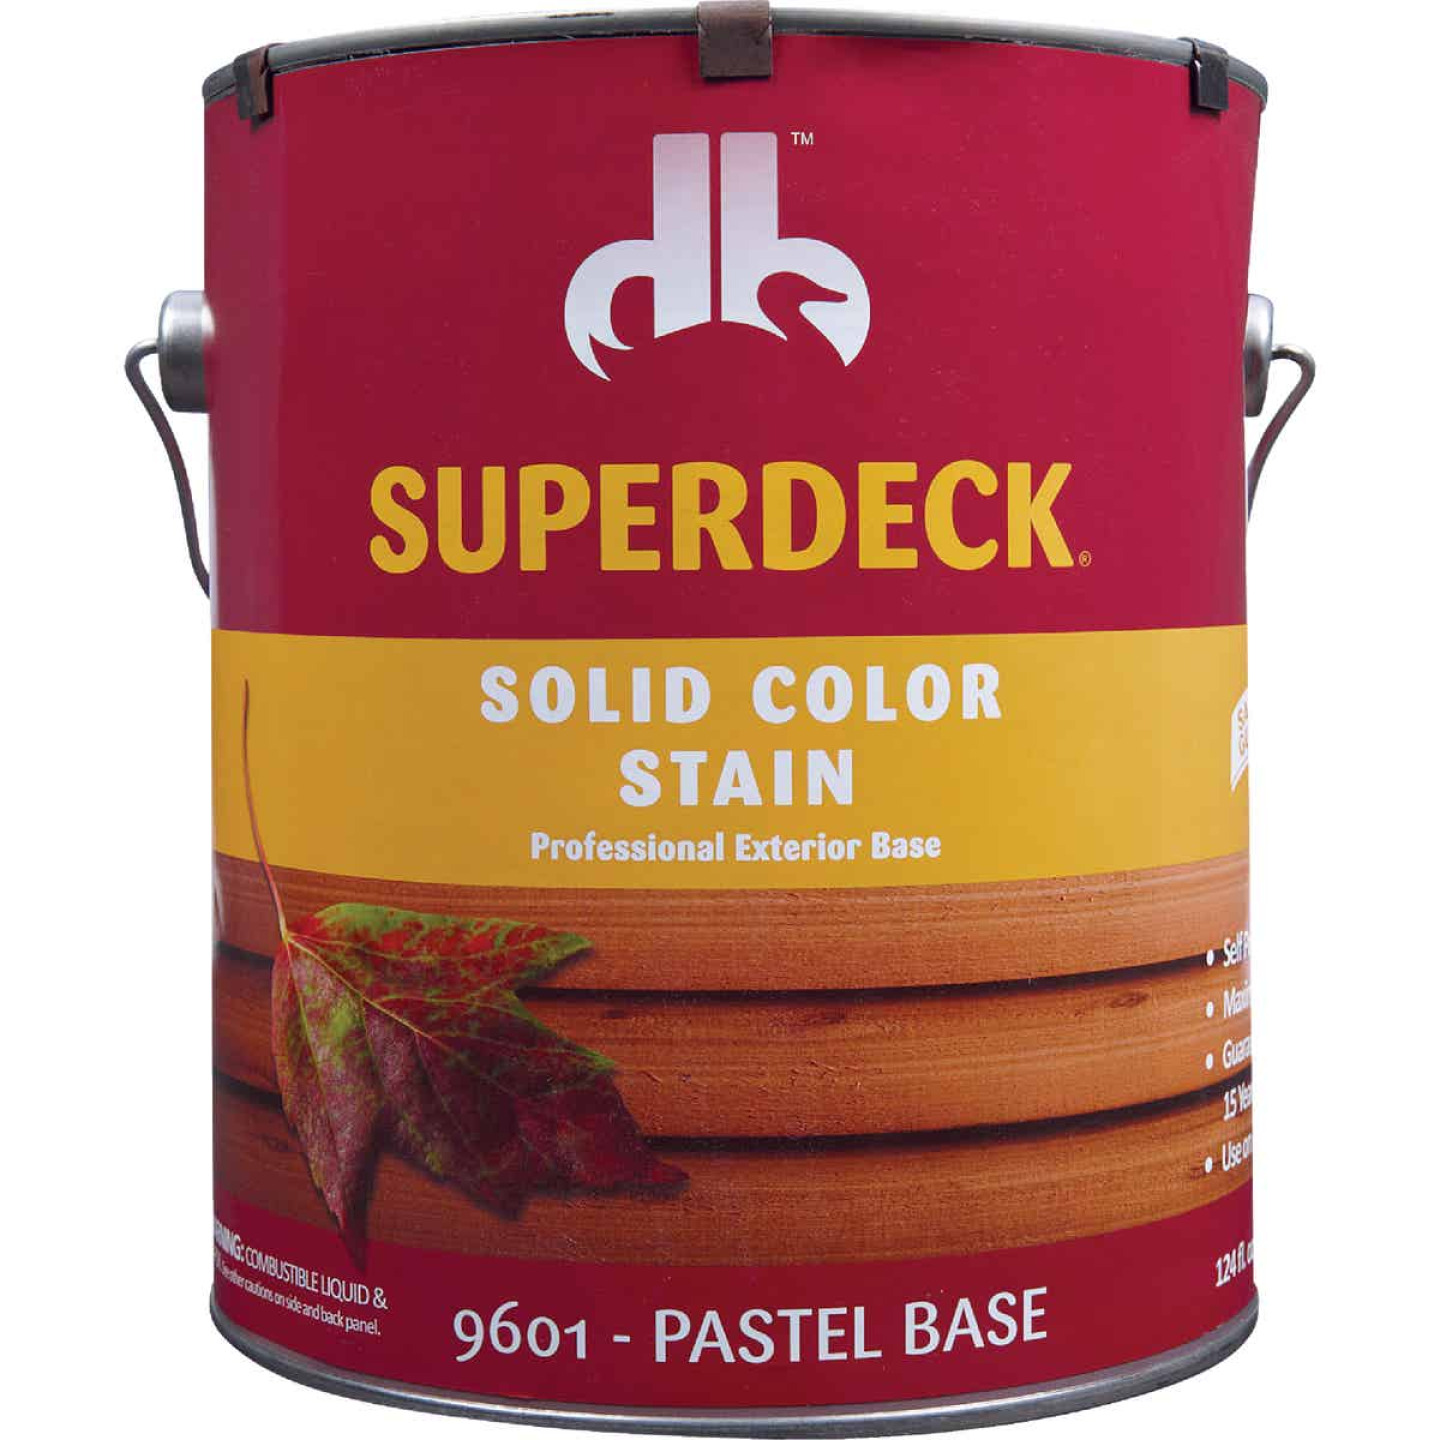 Duckback SUPERDECK Self Priming Solid Color Stain, Pastel Base, 1 Gal Image 2